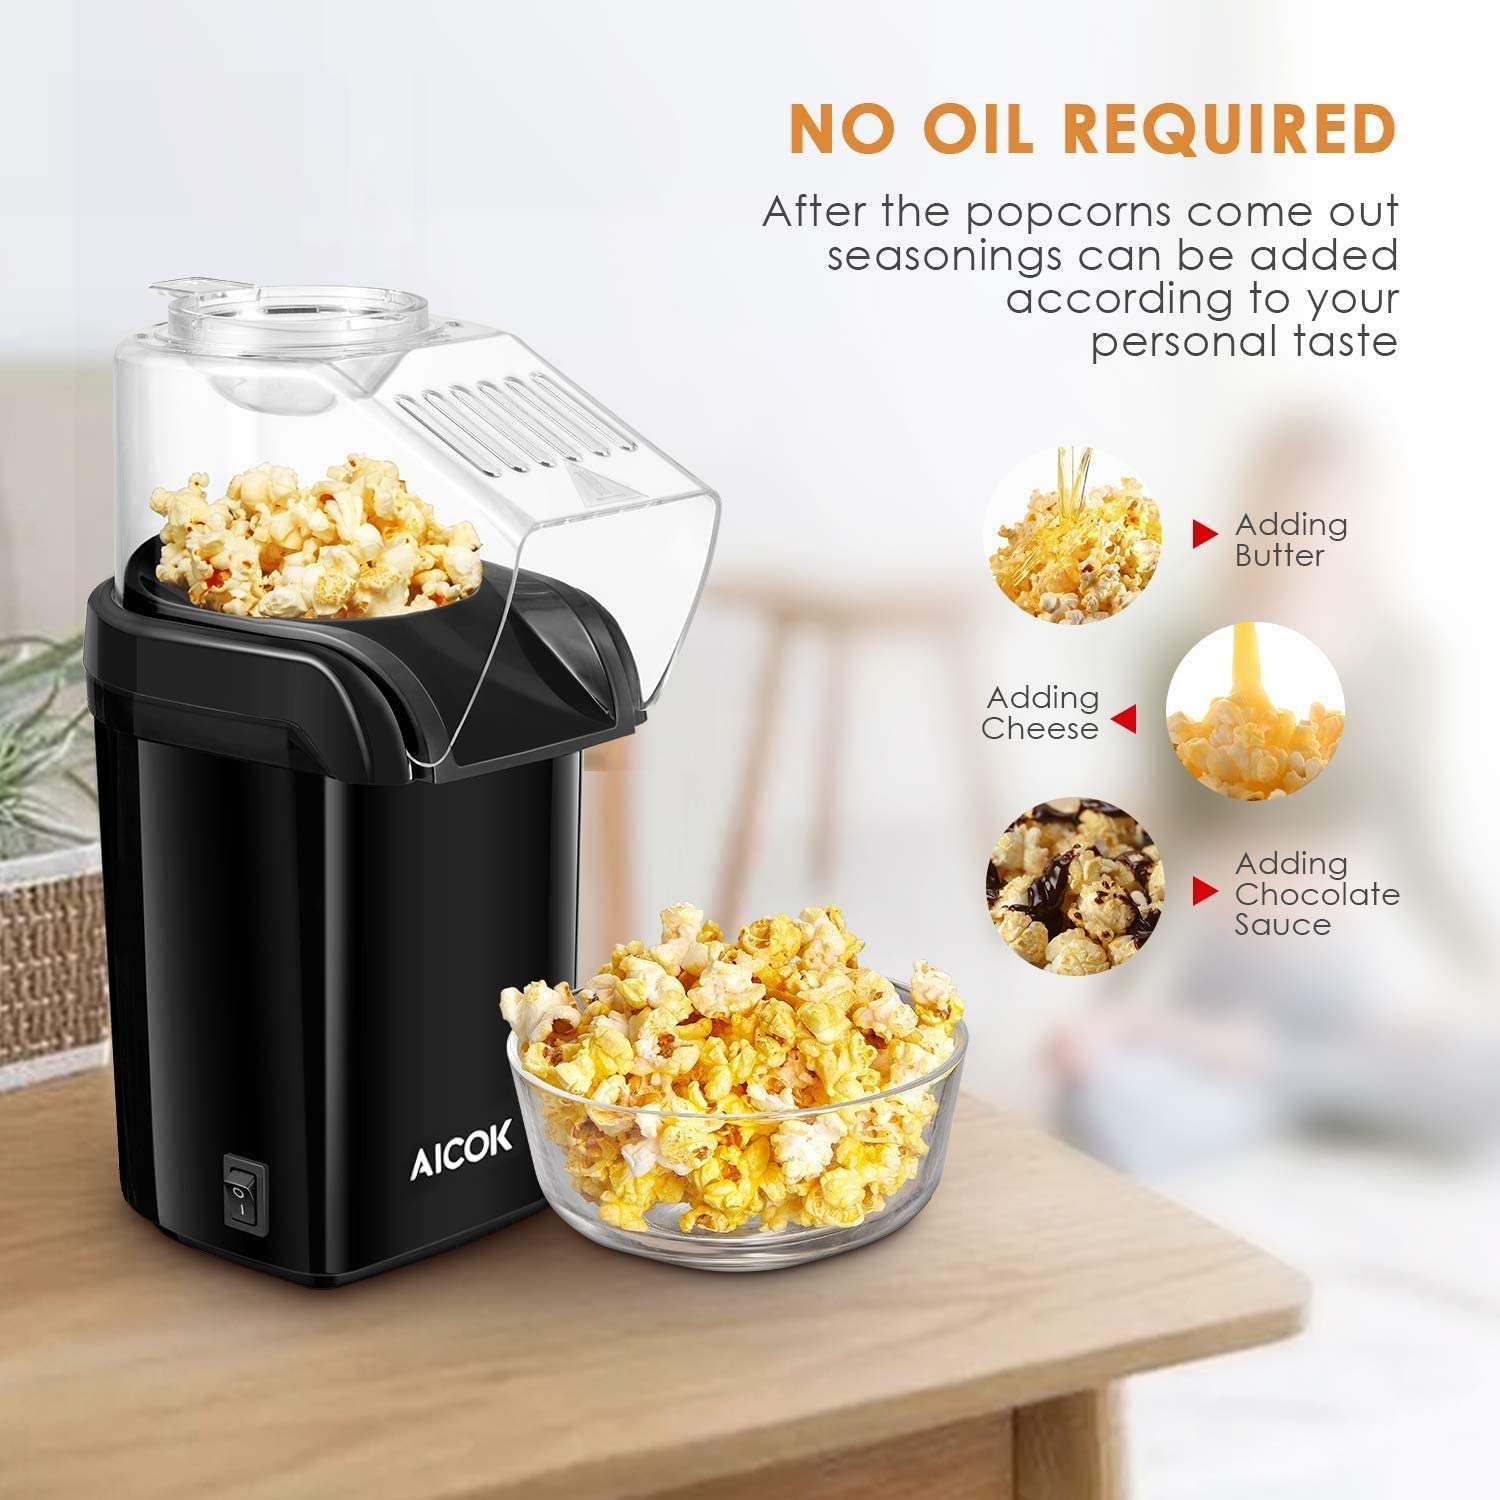 Measuring Cup Removable Lid Healthy and Fat-Free Popcorn Popper Hot Air Popcorn Maker Aicok 1200W Retro Popcorn Machine